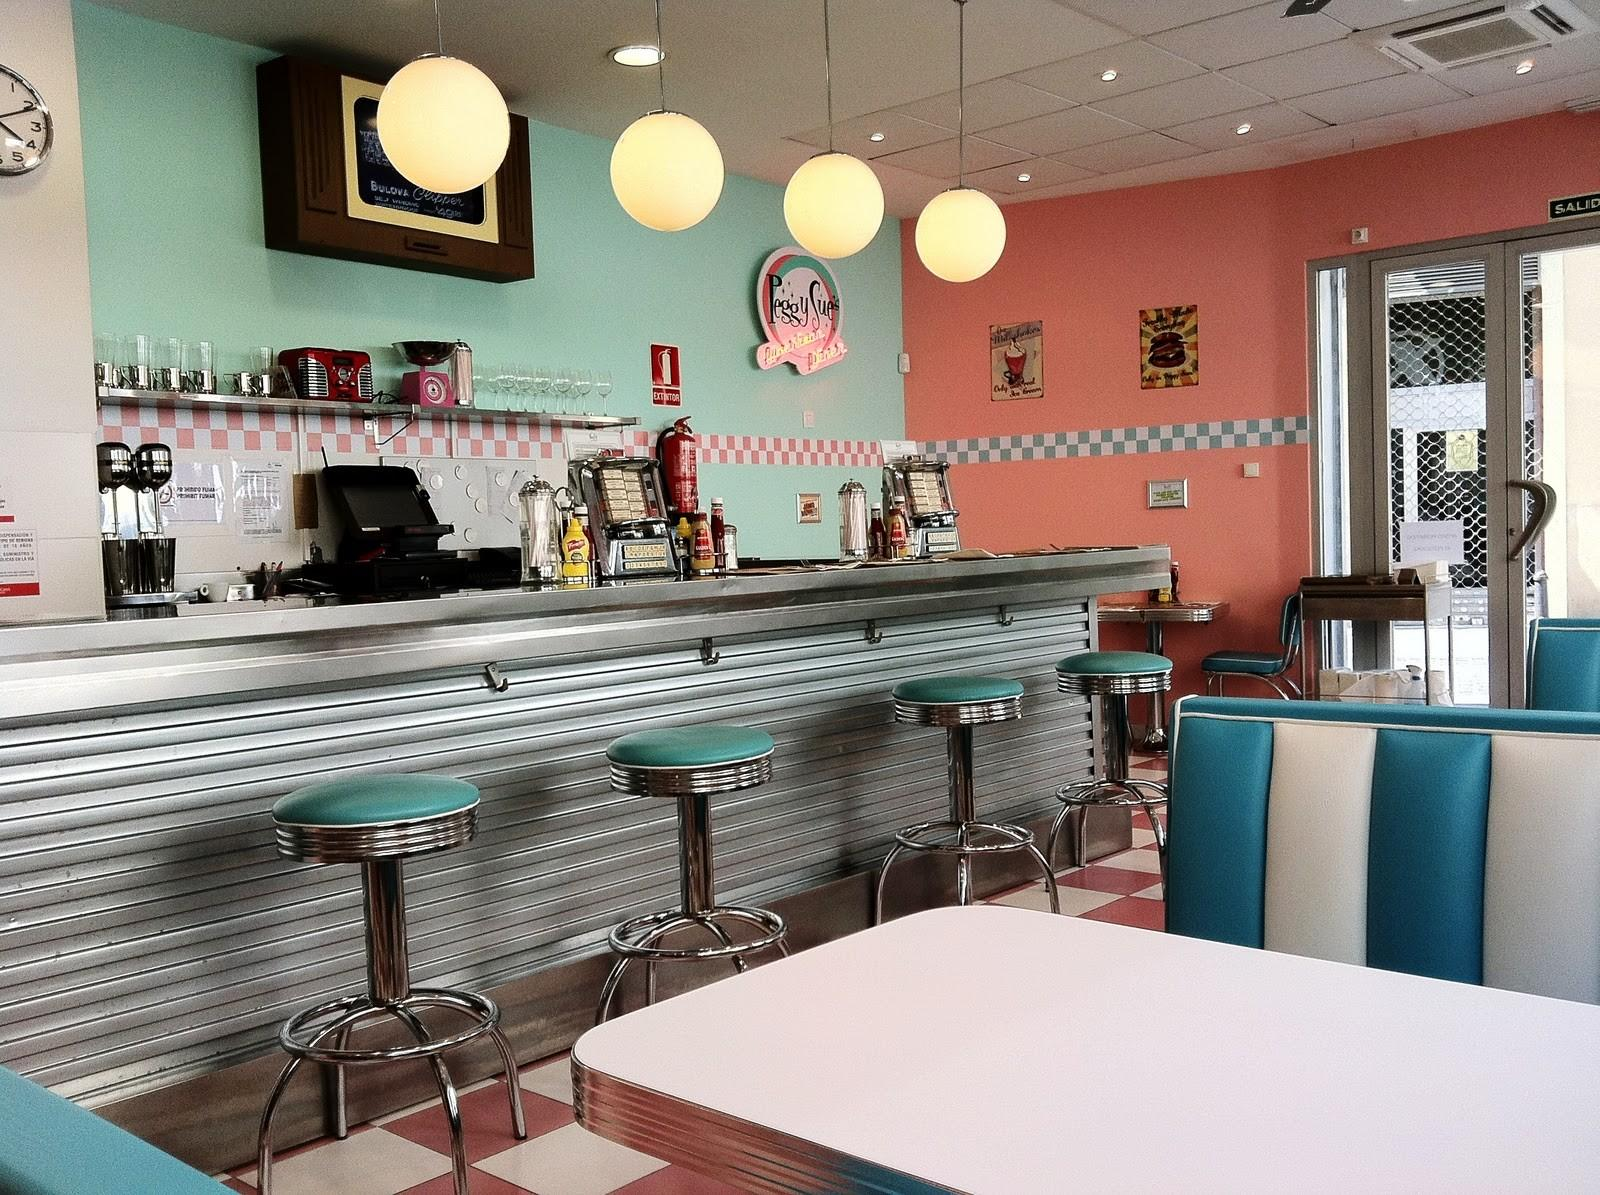 American Diner Diners 50s Retro